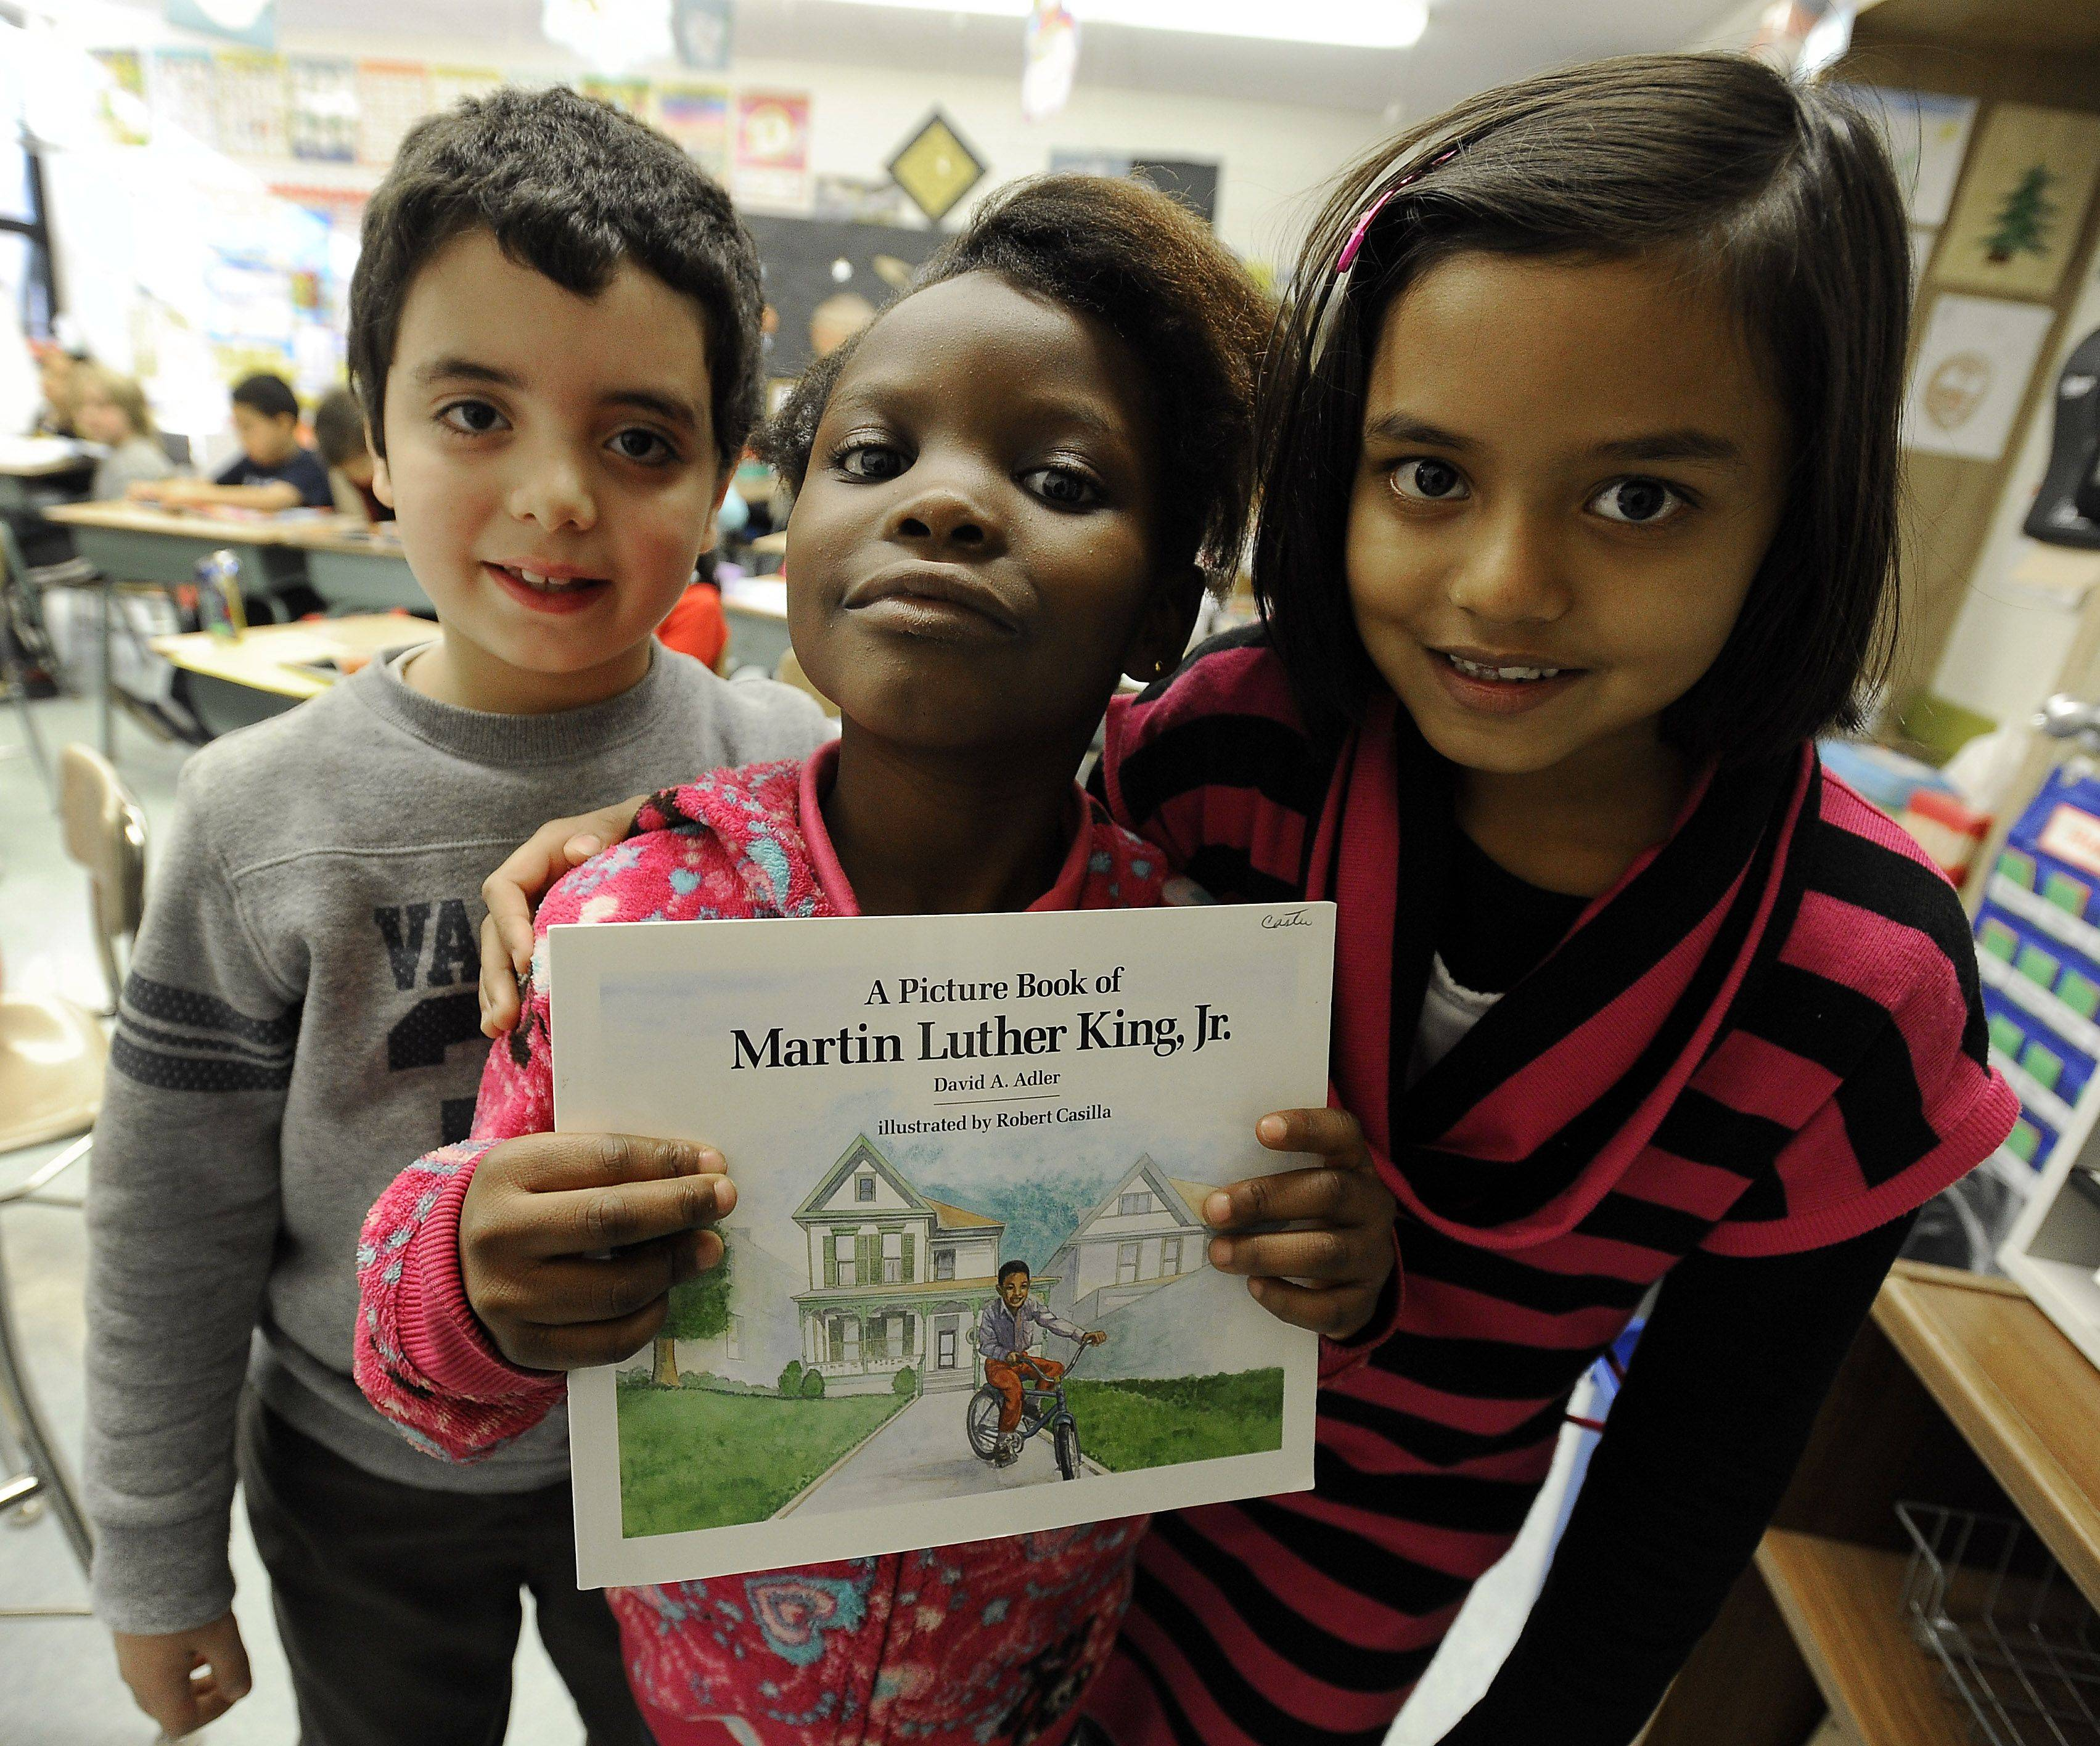 Aram Hanna,6, Shakinah Phiri,6, and Pravika Srivastava,7, of Mrs. Ann Caster 1st grade class come together to celebrate the life of Martin Luther King in their classroom at Robert Frost Elementary School in Mt. Prospect with pictures and their own thoughts written in essays.